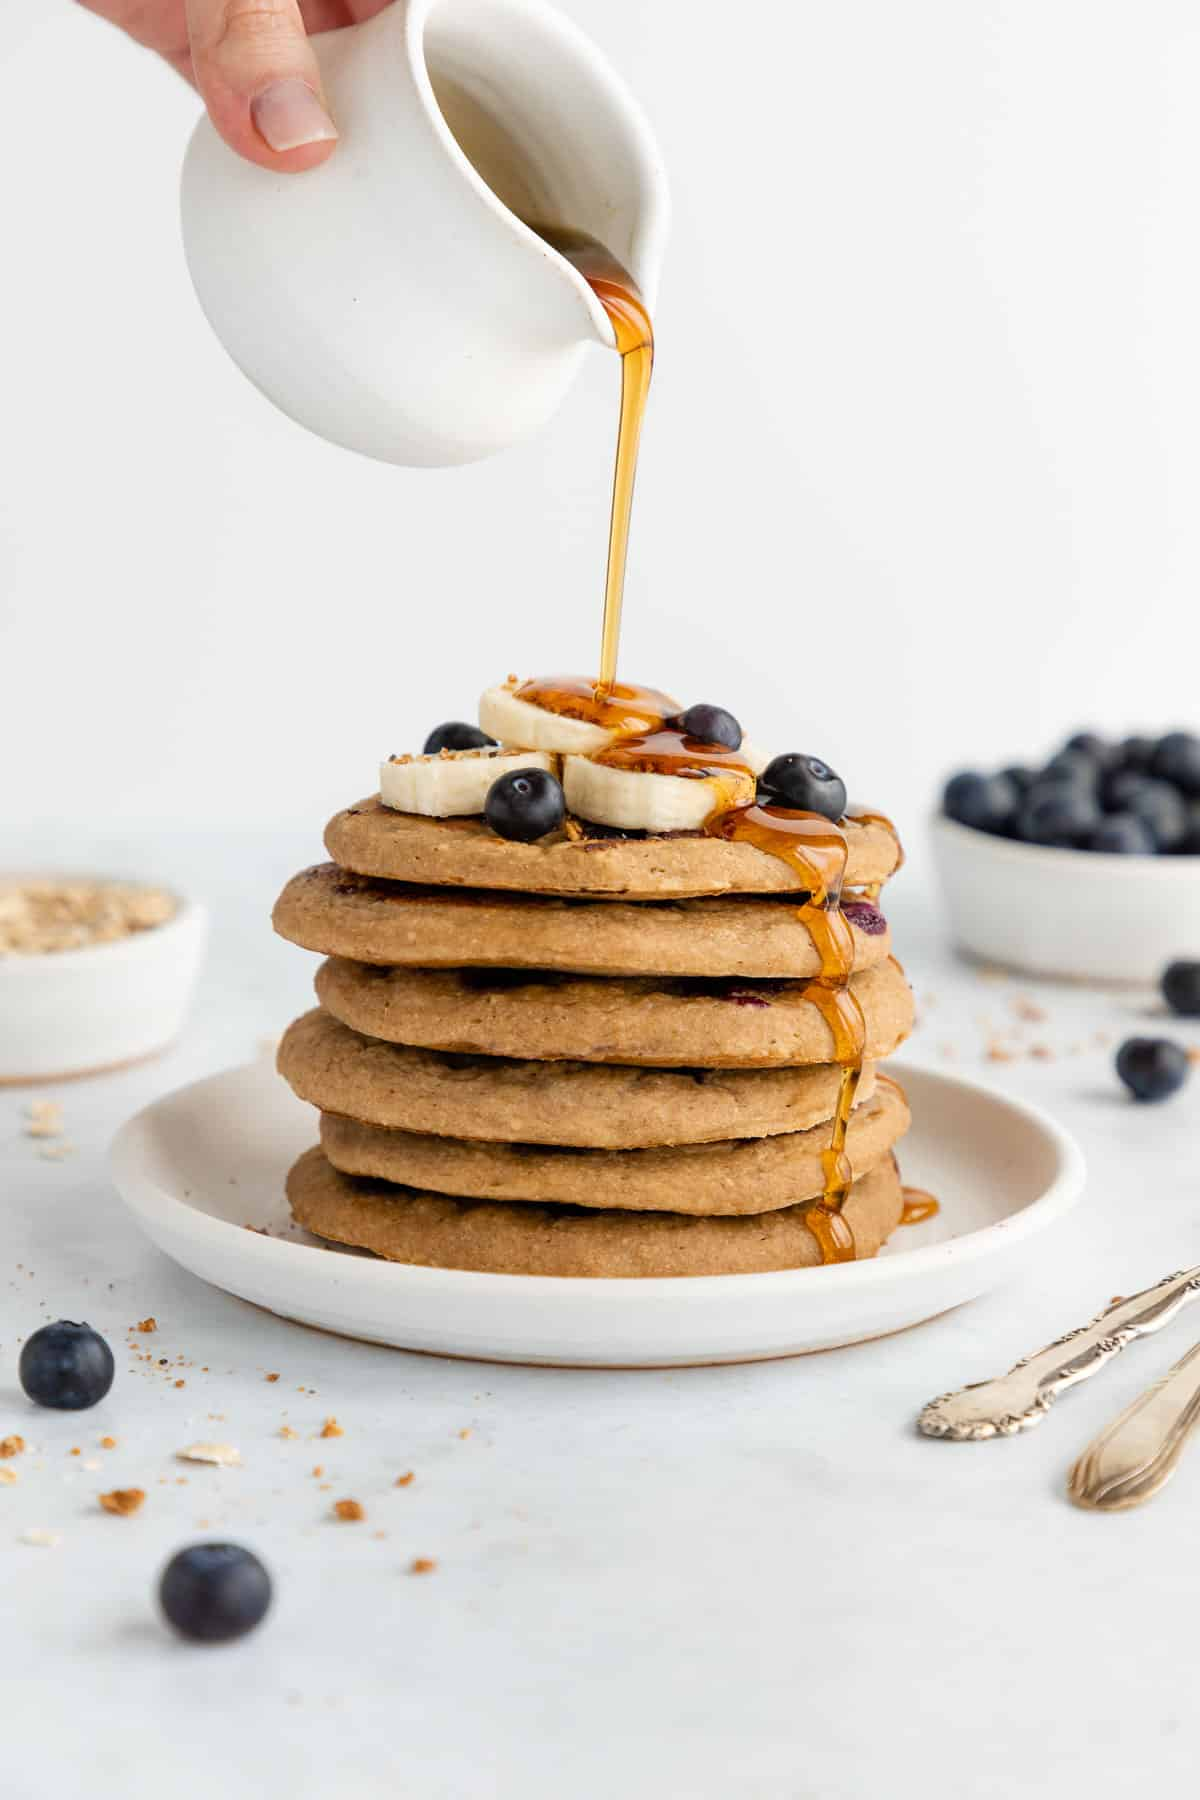 a hand pouring maple syrup over a stack of vegan blueberry banana pancakes